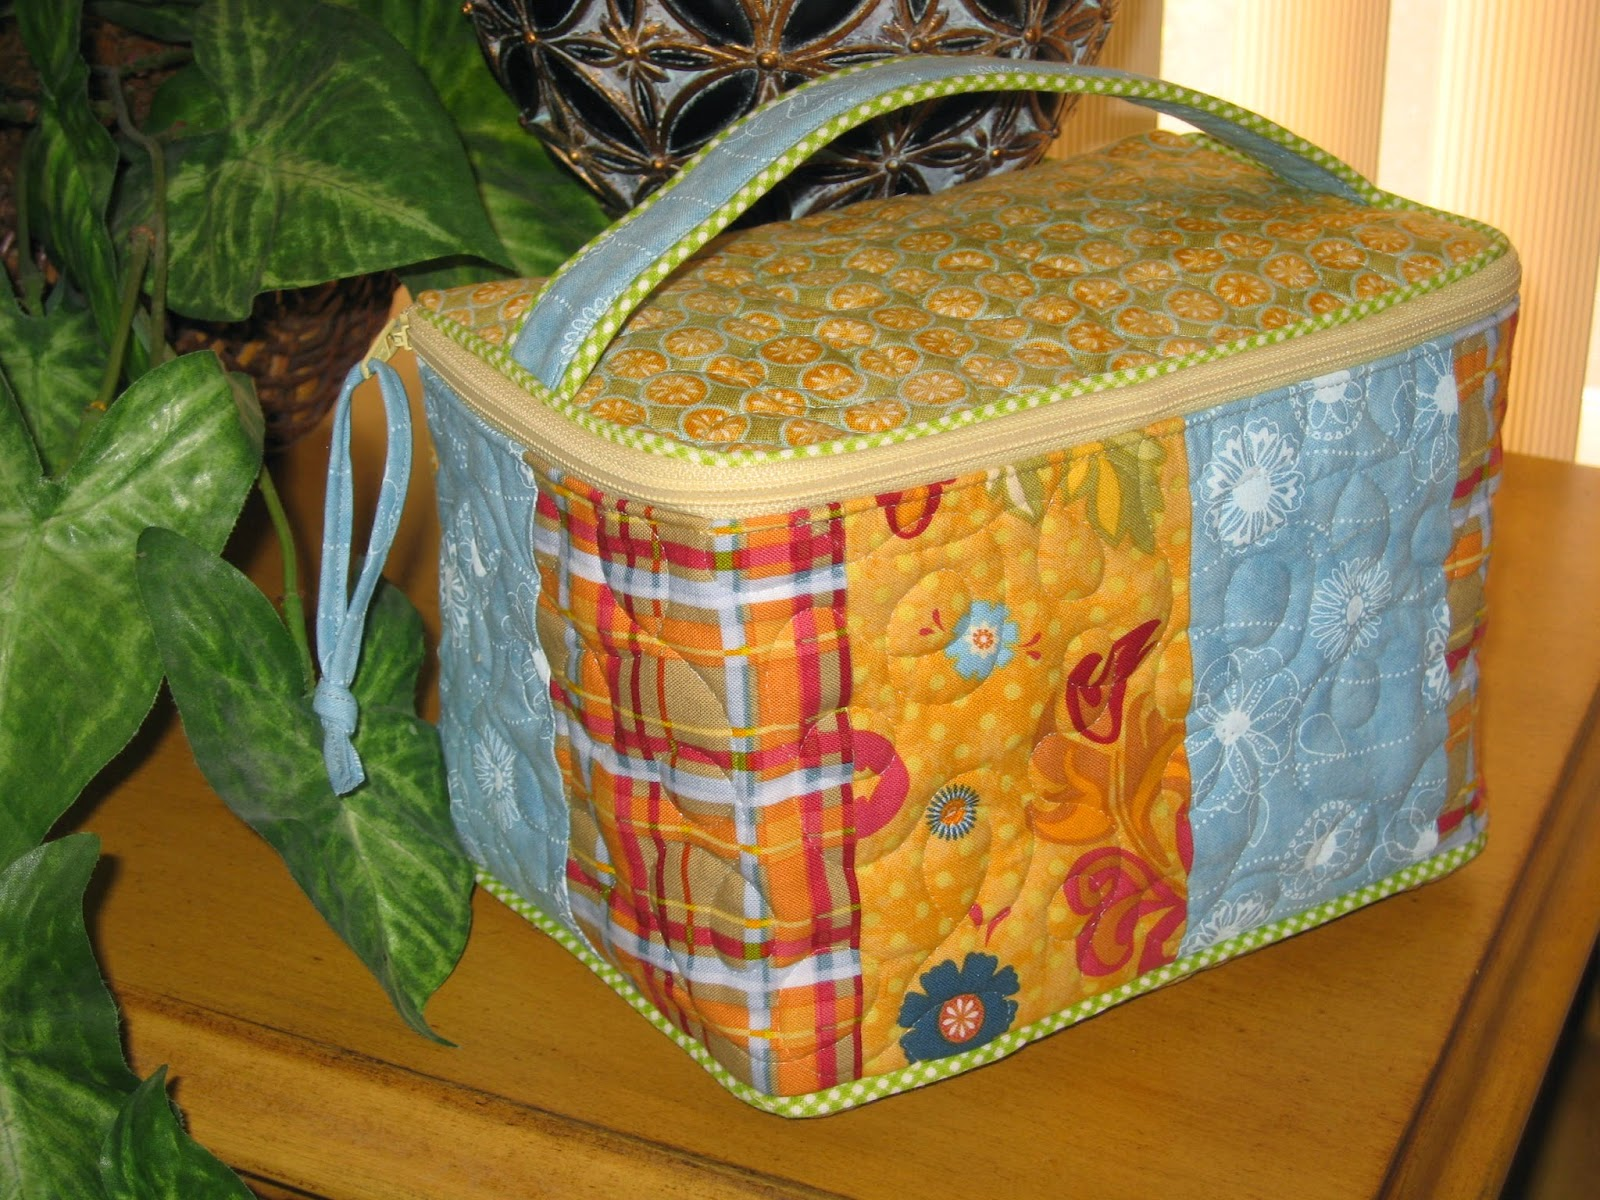 The Rikki Bag from Quilted Bags and Totes